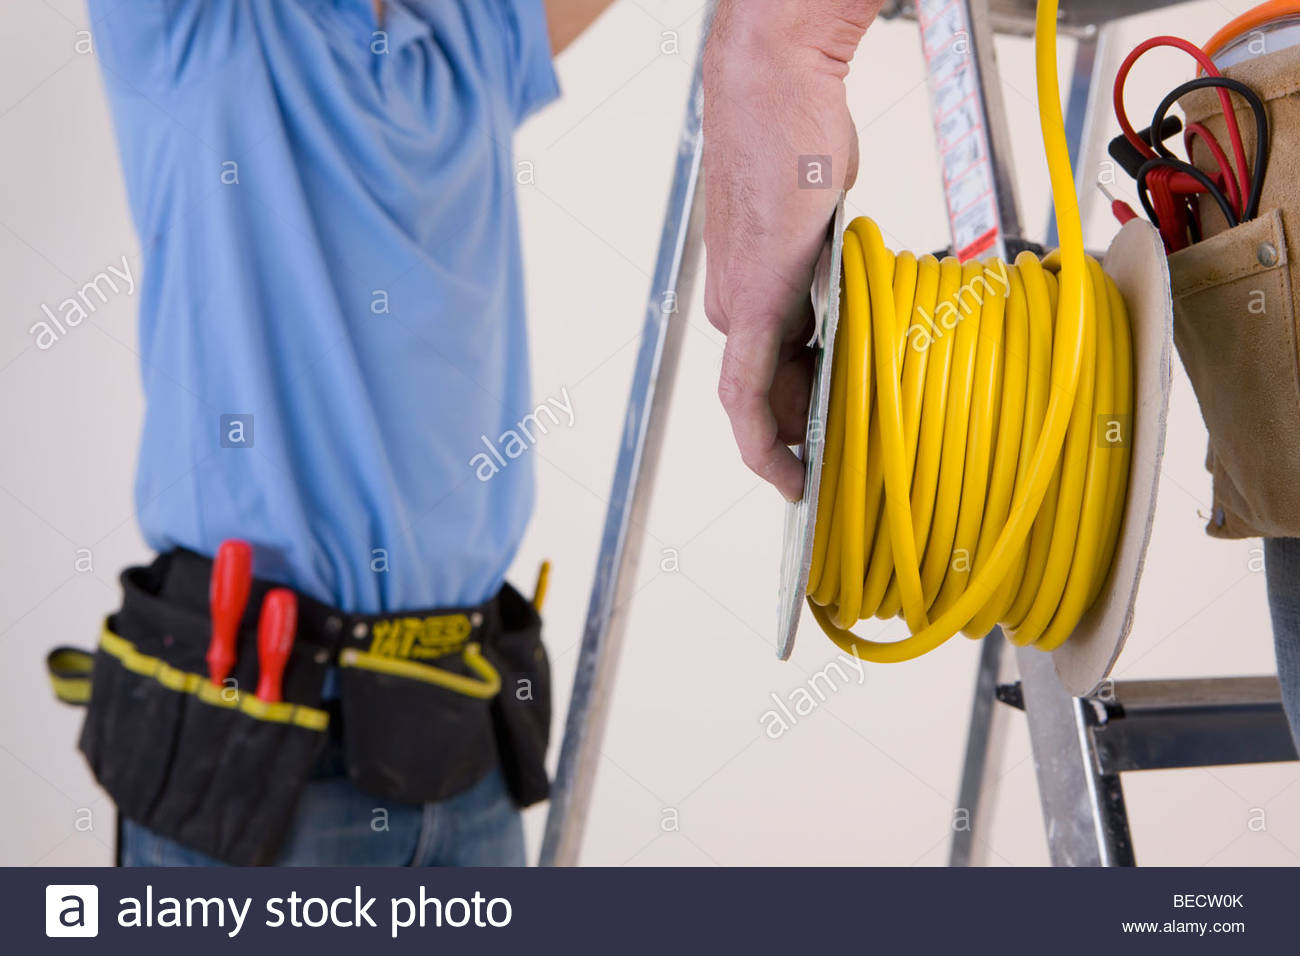 Electrician holding cable spool - Stock Image